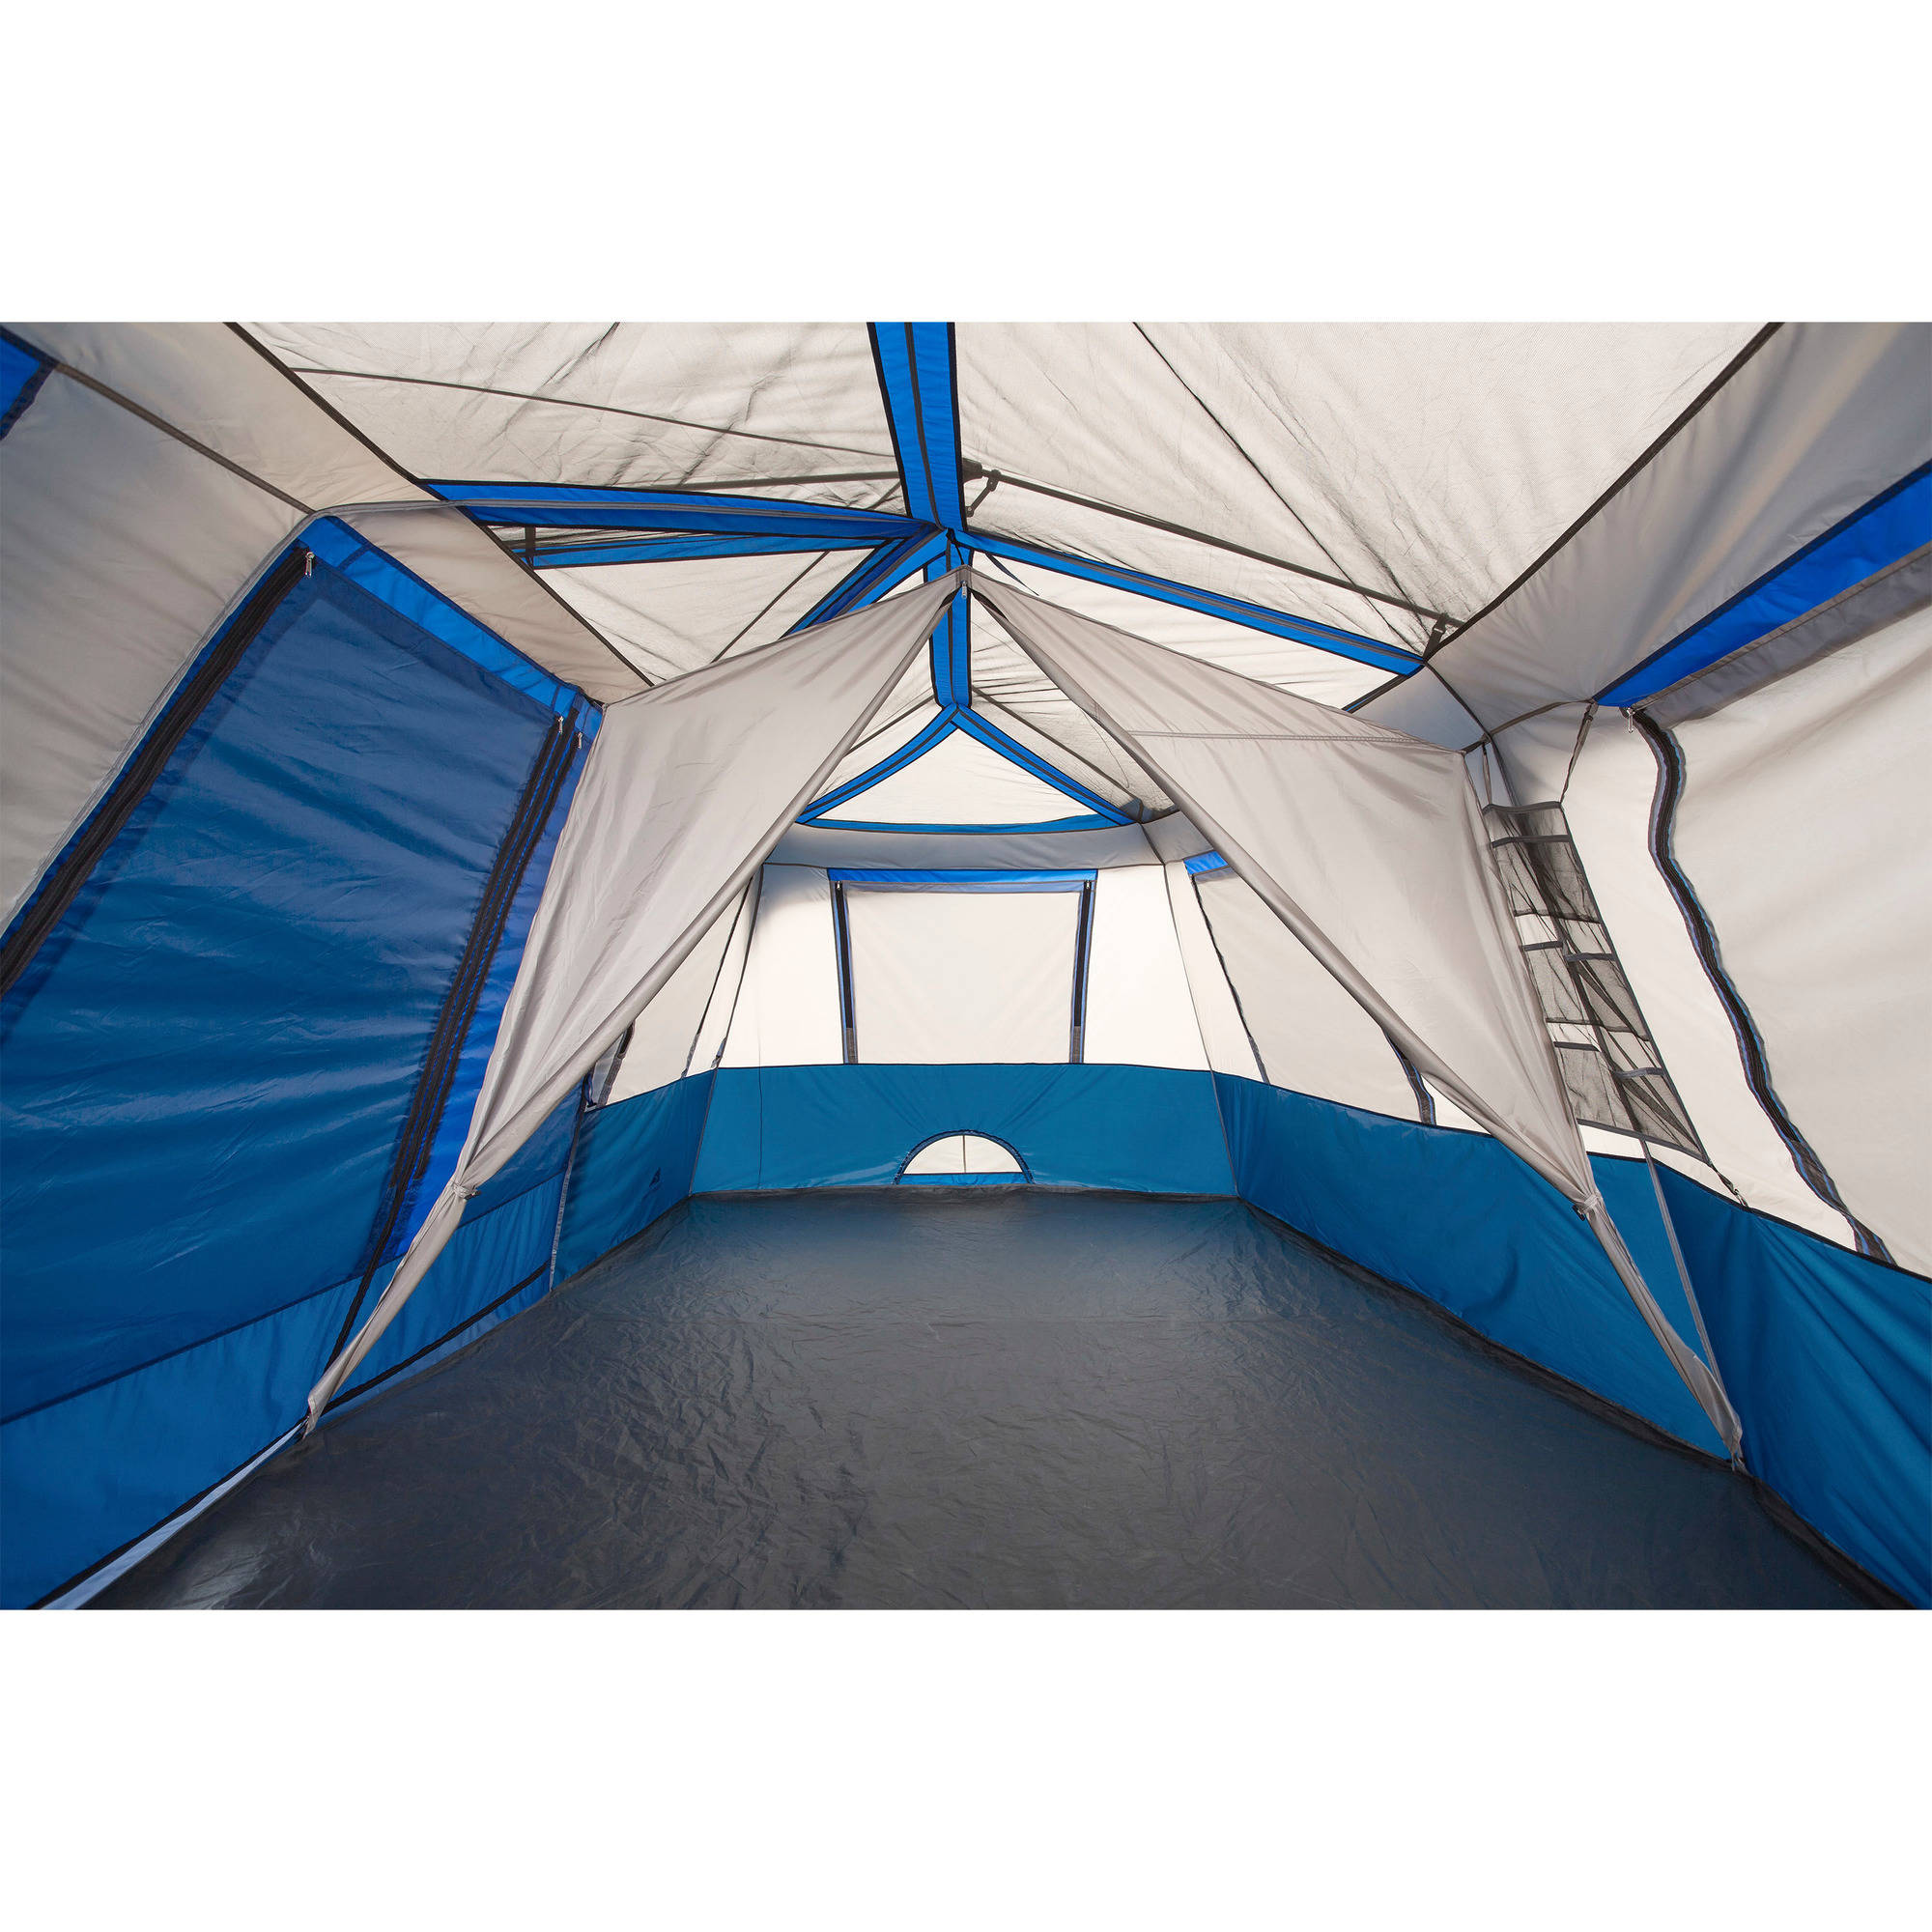 Ozark Trail 12 Person 2 Room Instant Cabin Tent with Screen Room - Walmart.com  sc 1 st  Walmart & Ozark Trail 12 Person 2 Room Instant Cabin Tent with Screen Room ...